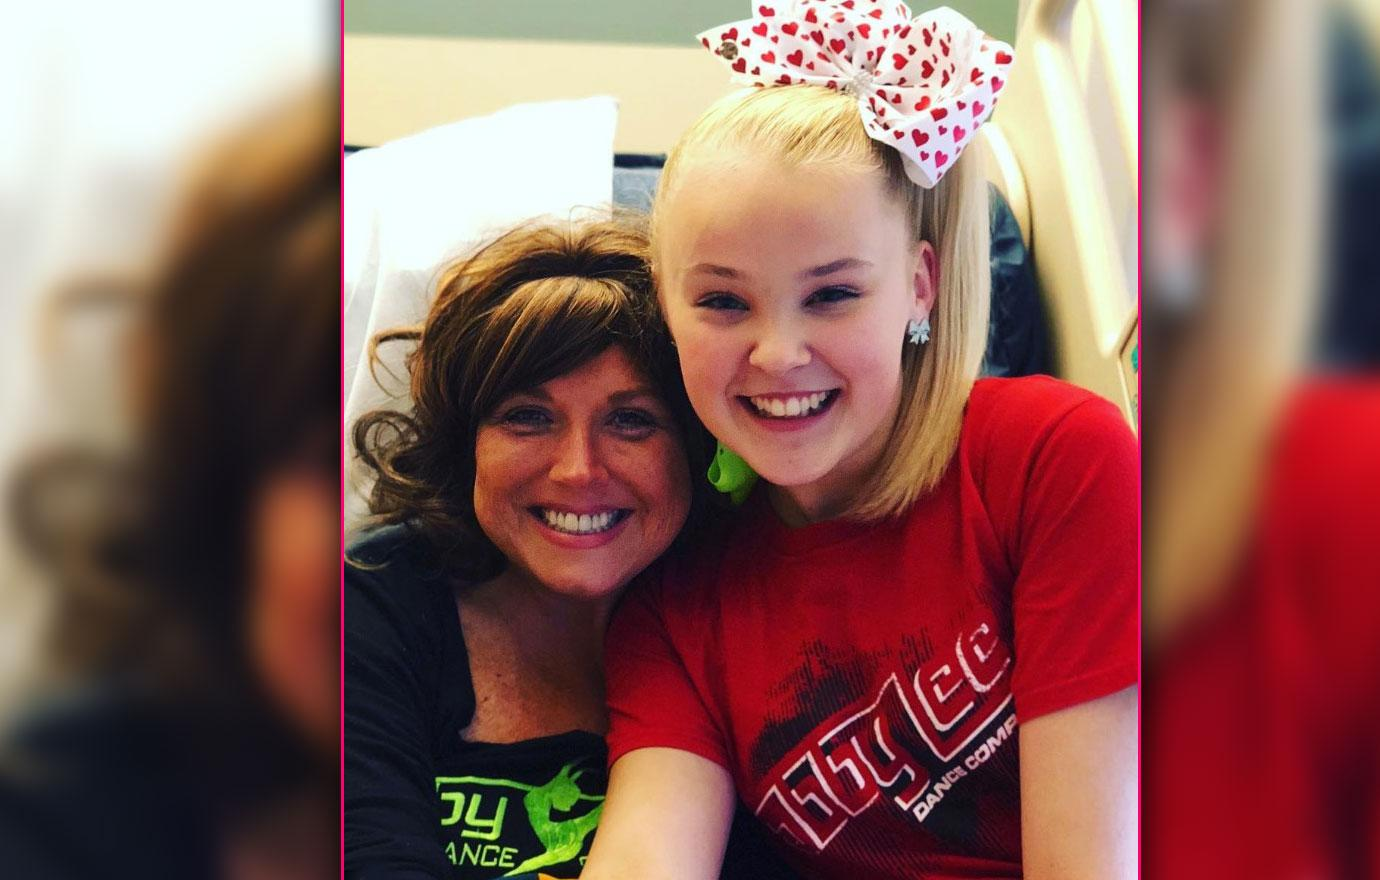 Cancer Stricken Abby Lee Miller Gets Hospital Visit Gifts From Jo Jo Siwa